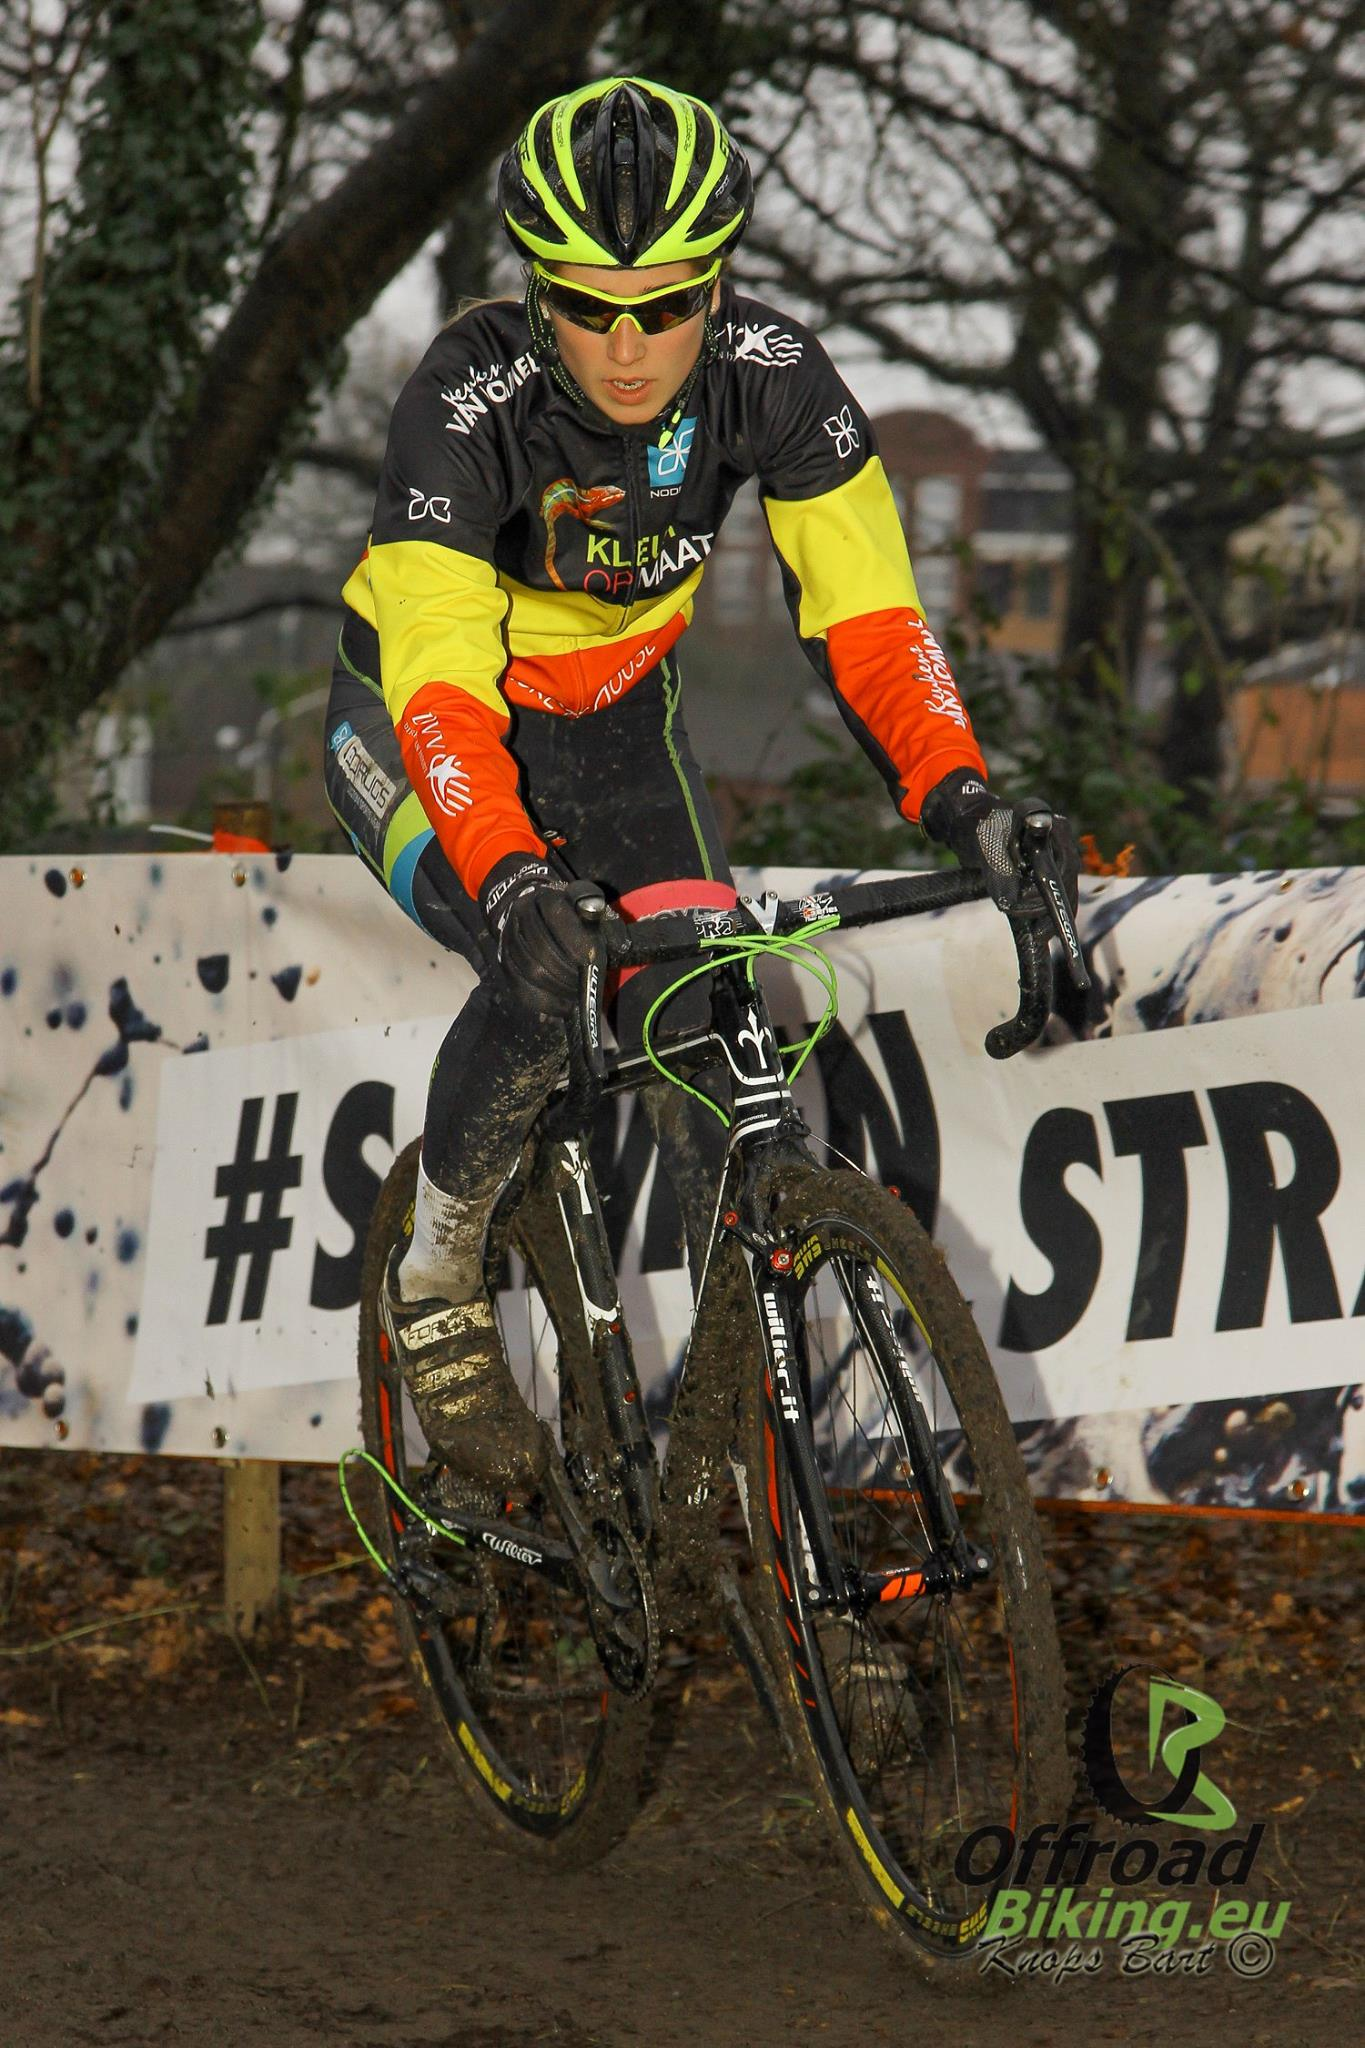 UCI introduces a new Women's U23 category in WC Zolder